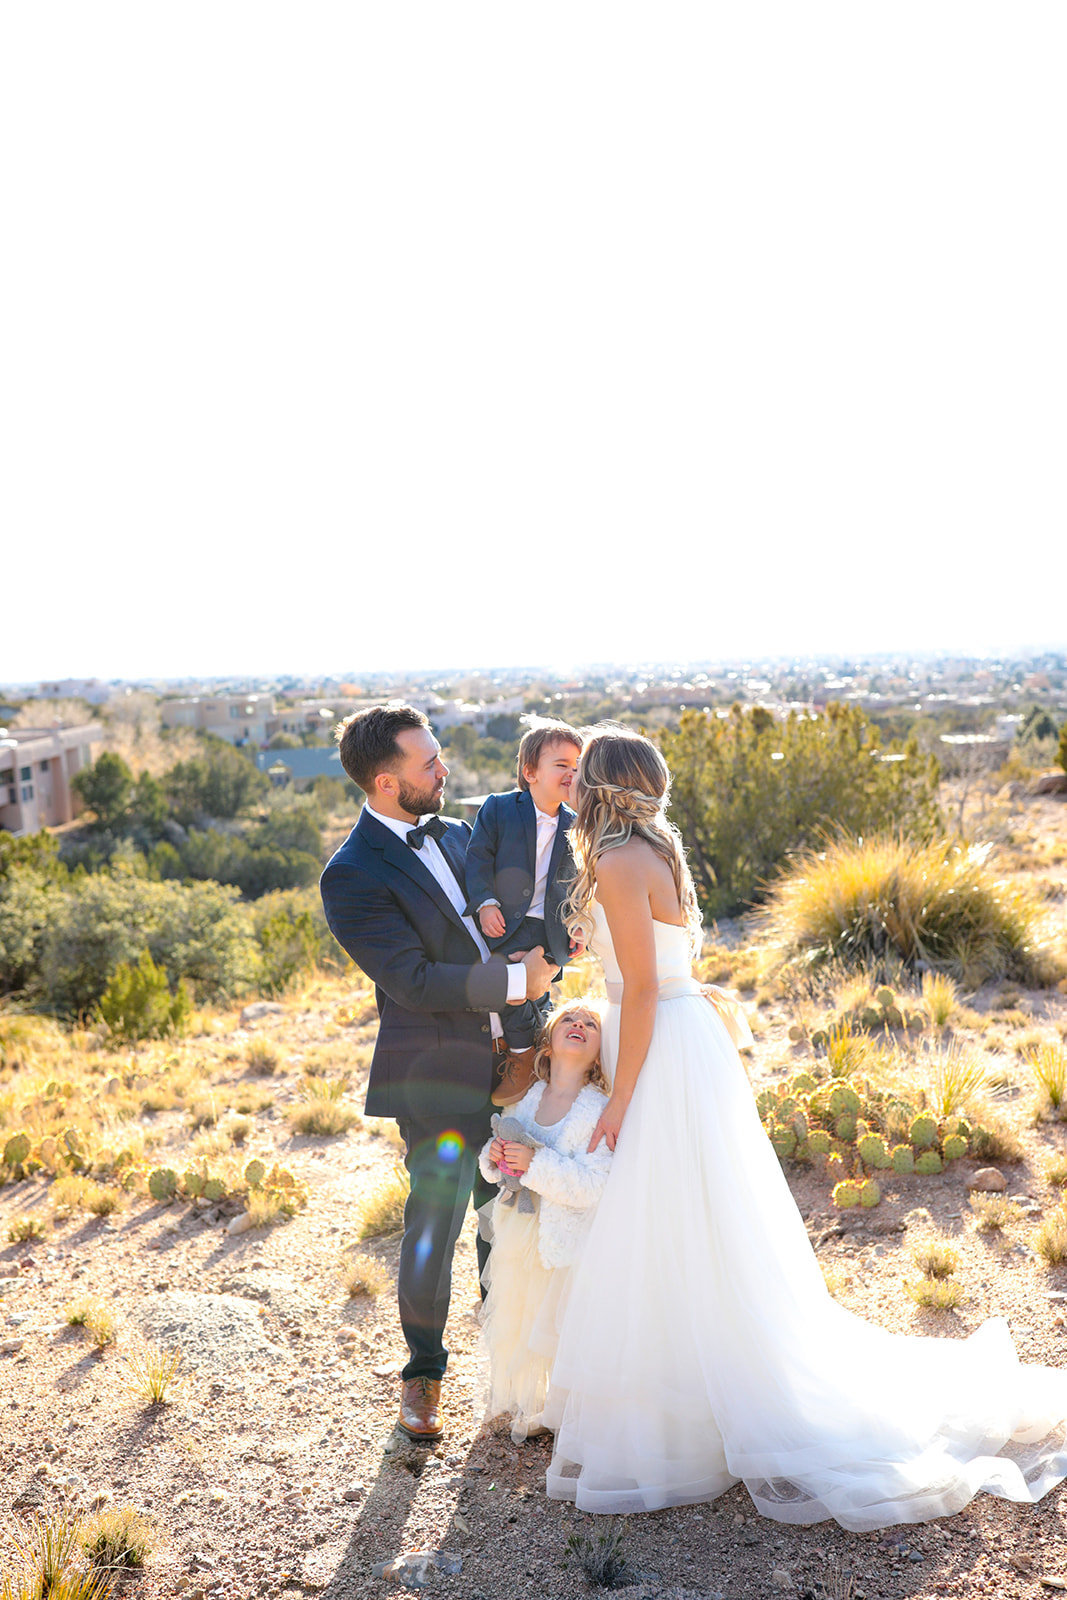 Albuquerque Wedding Photographers_www.tylerbrooke.com_Kate Kauffman_004